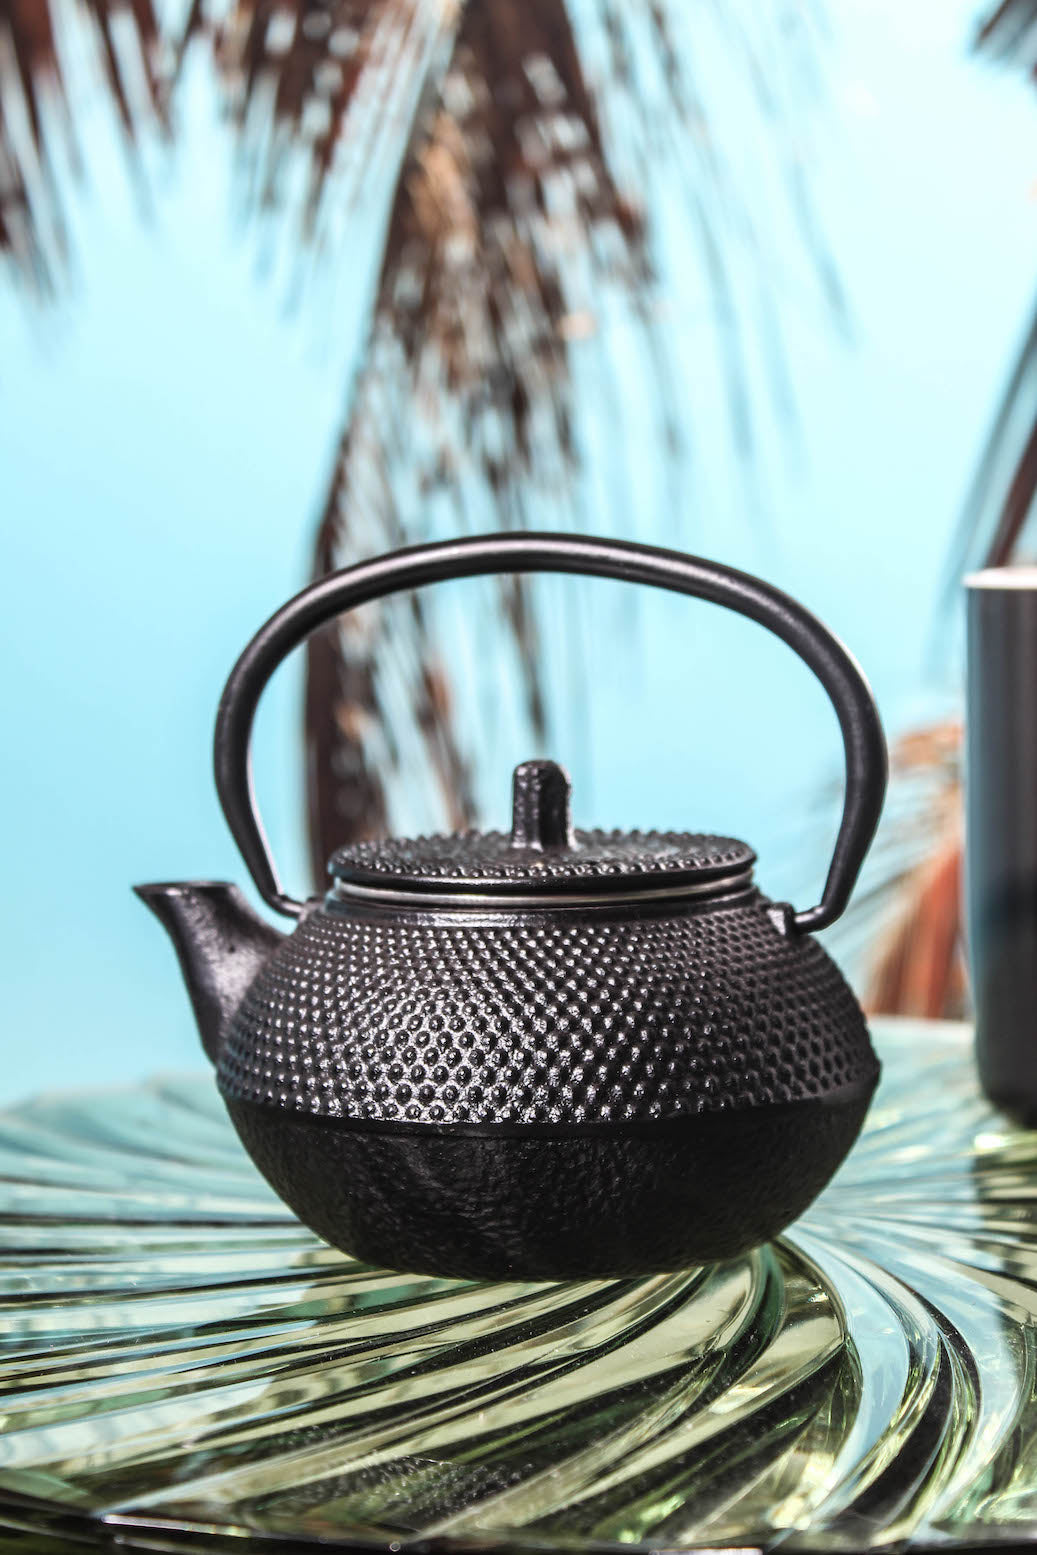 Black Cast Iron Teapot with Filter